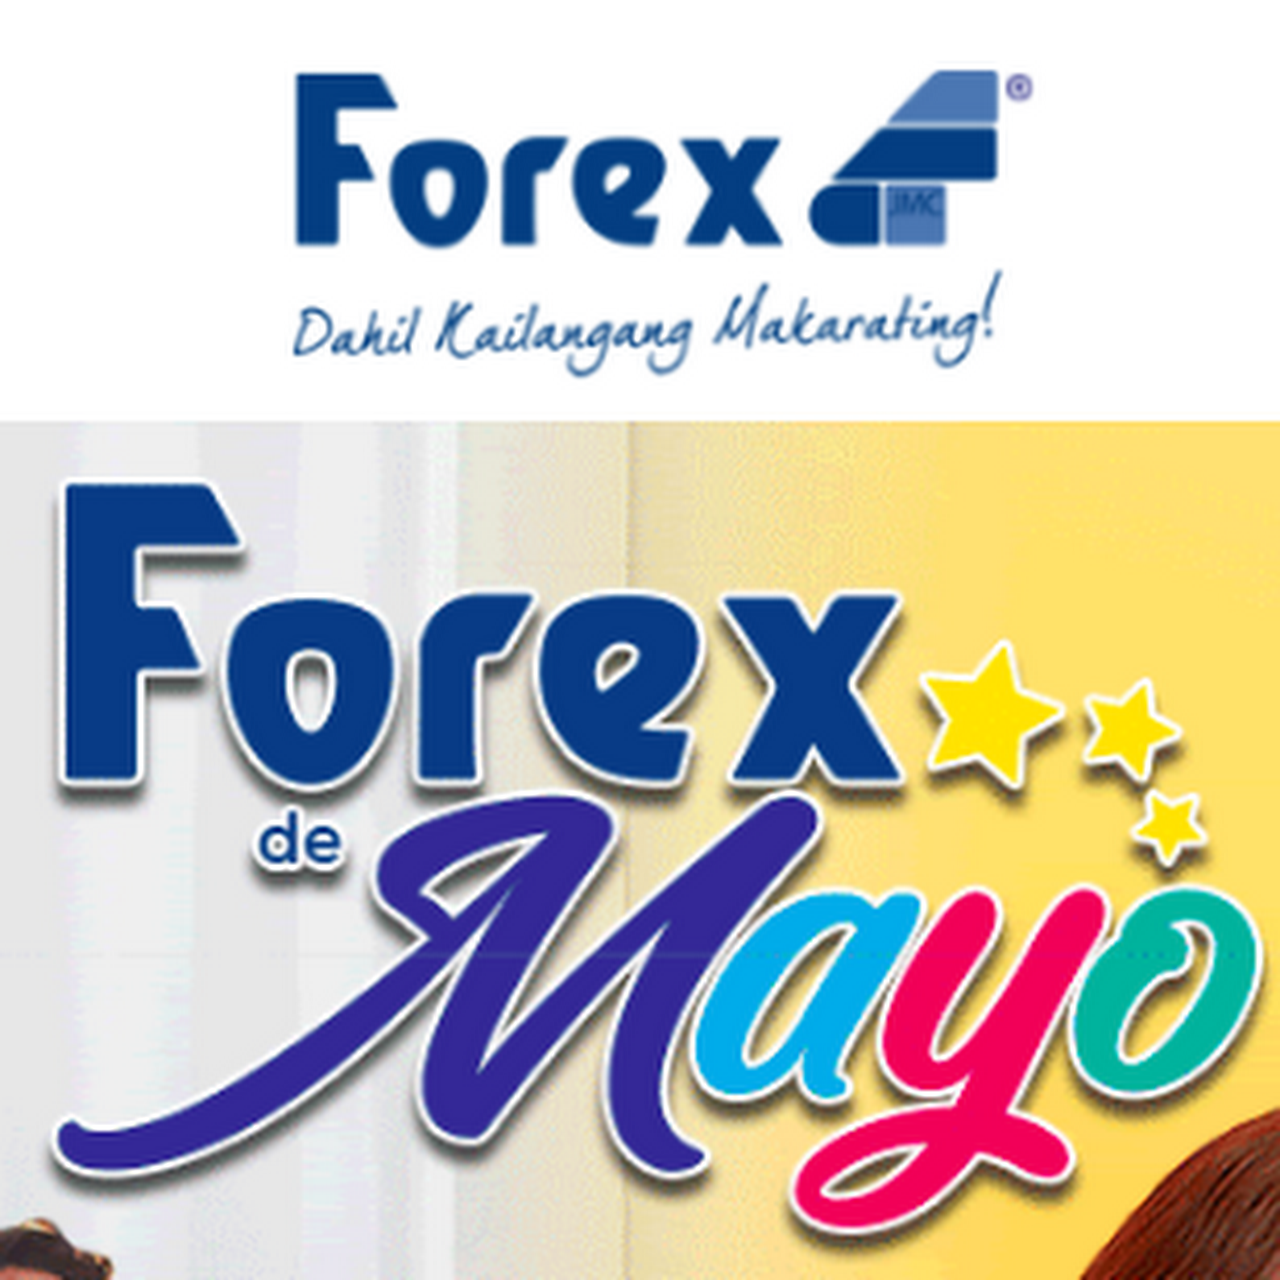 Forex Cargo - Business Services Company - California - Shipping Rates